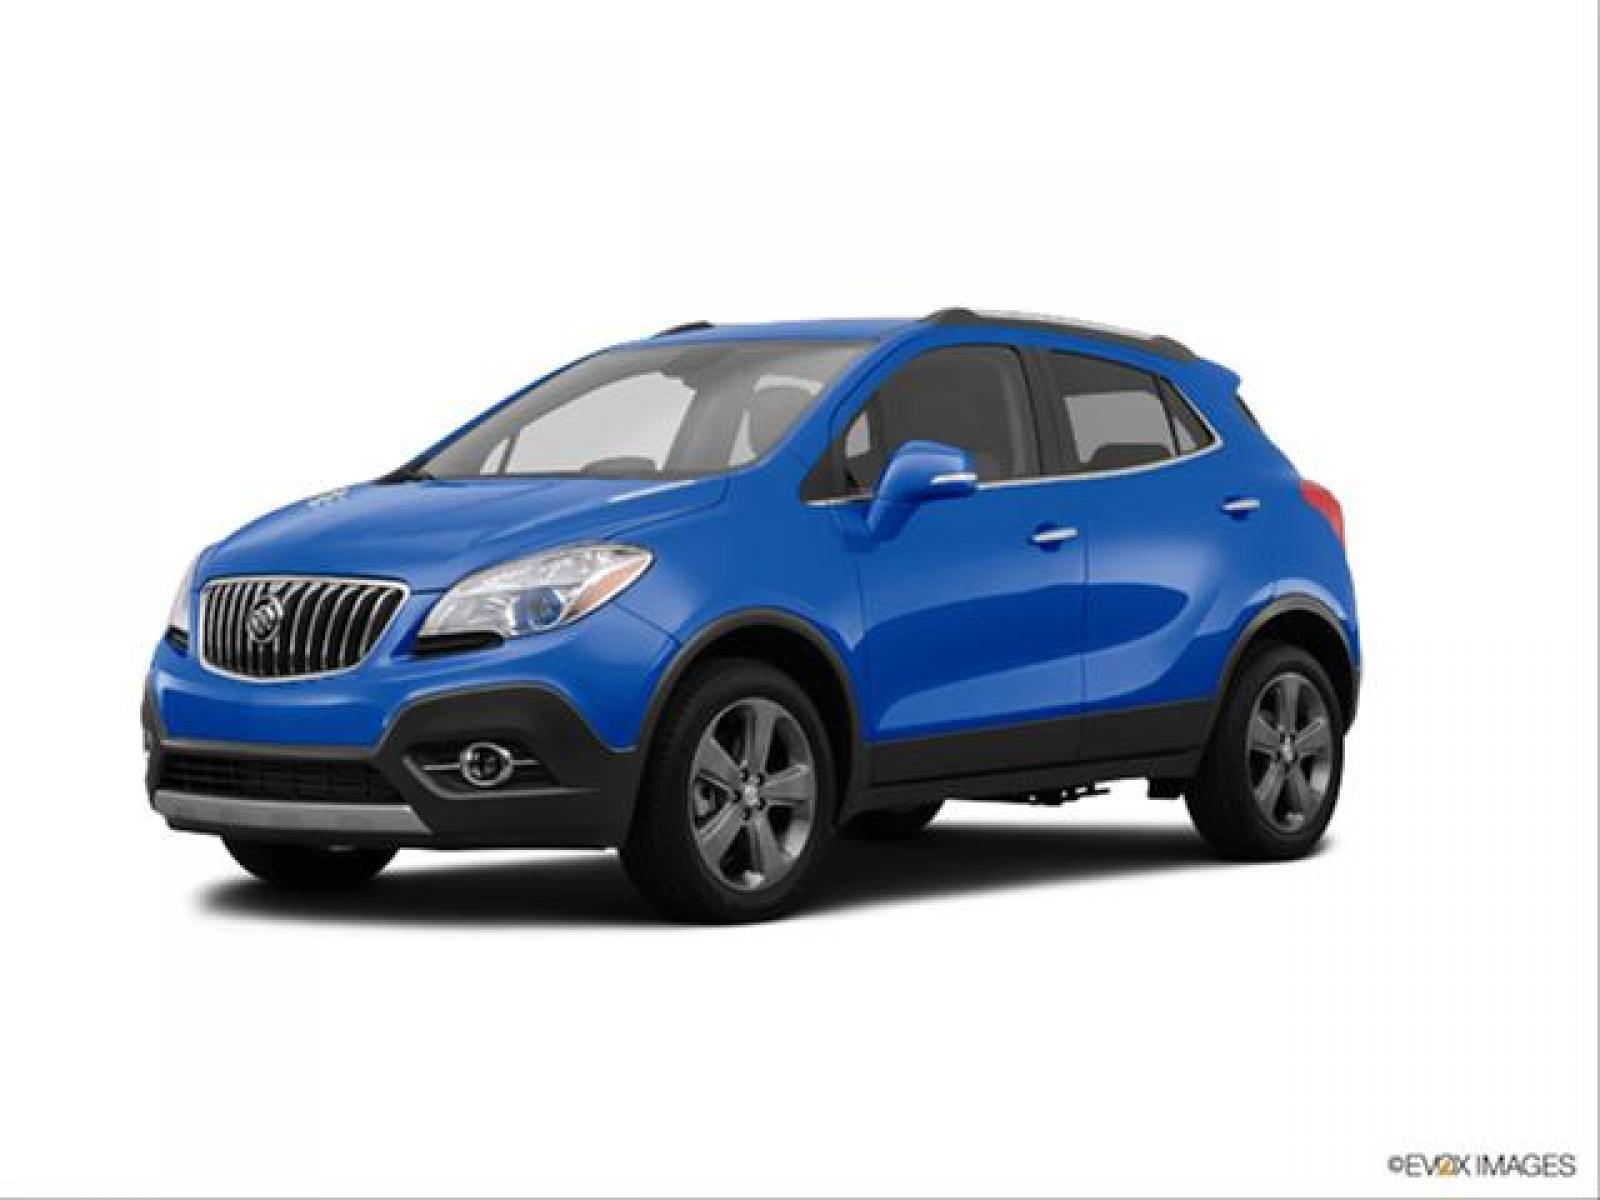 buick encore 2014 average guy review autos post. Black Bedroom Furniture Sets. Home Design Ideas